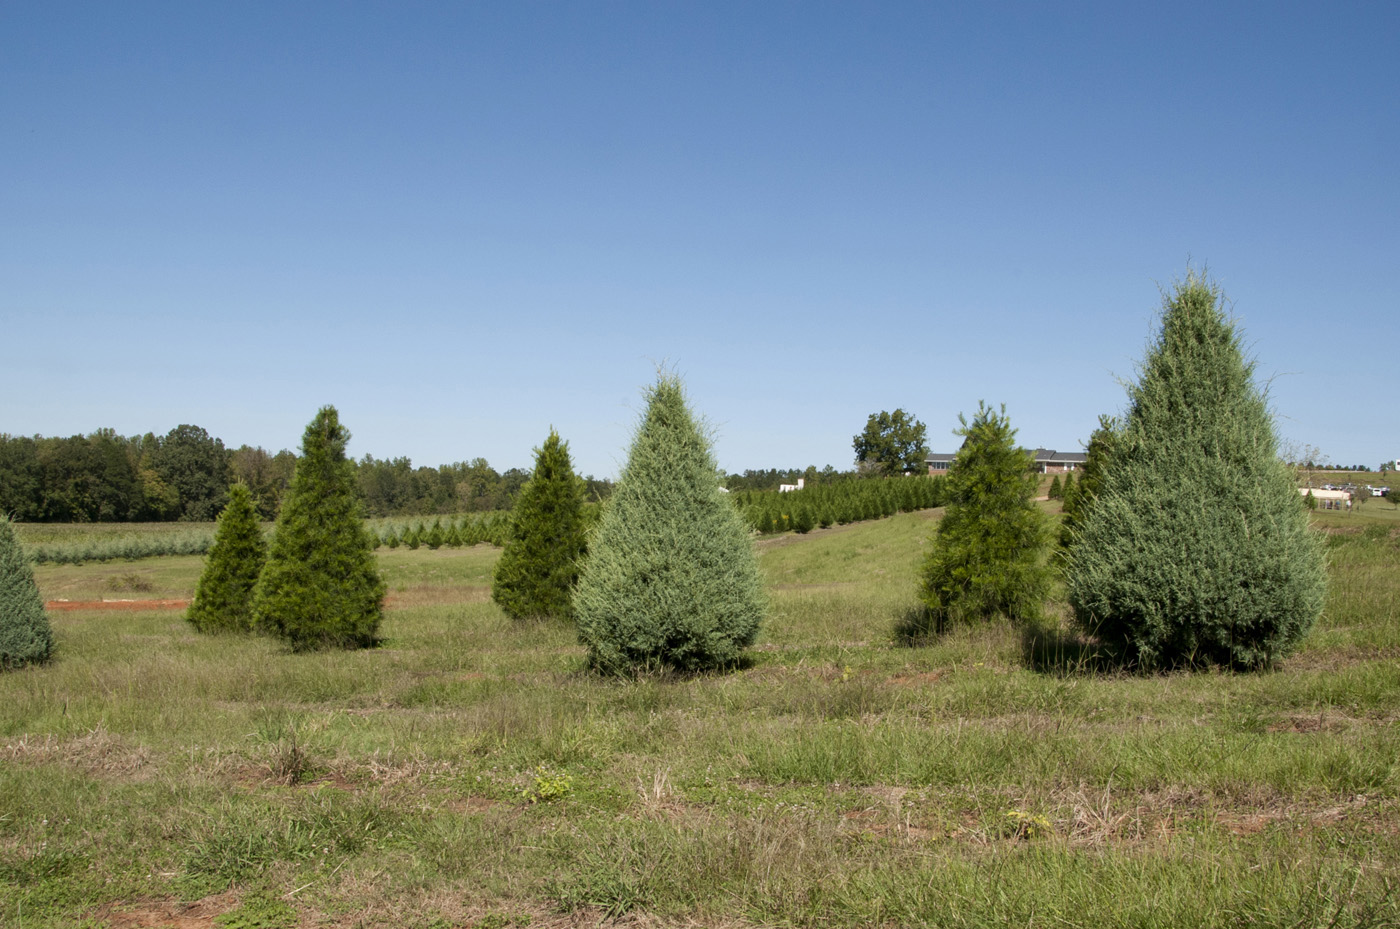 it takes four years to grow mississippi christmas trees to the popular 6 to 8 feet - How Many Christmas Trees Per Acre